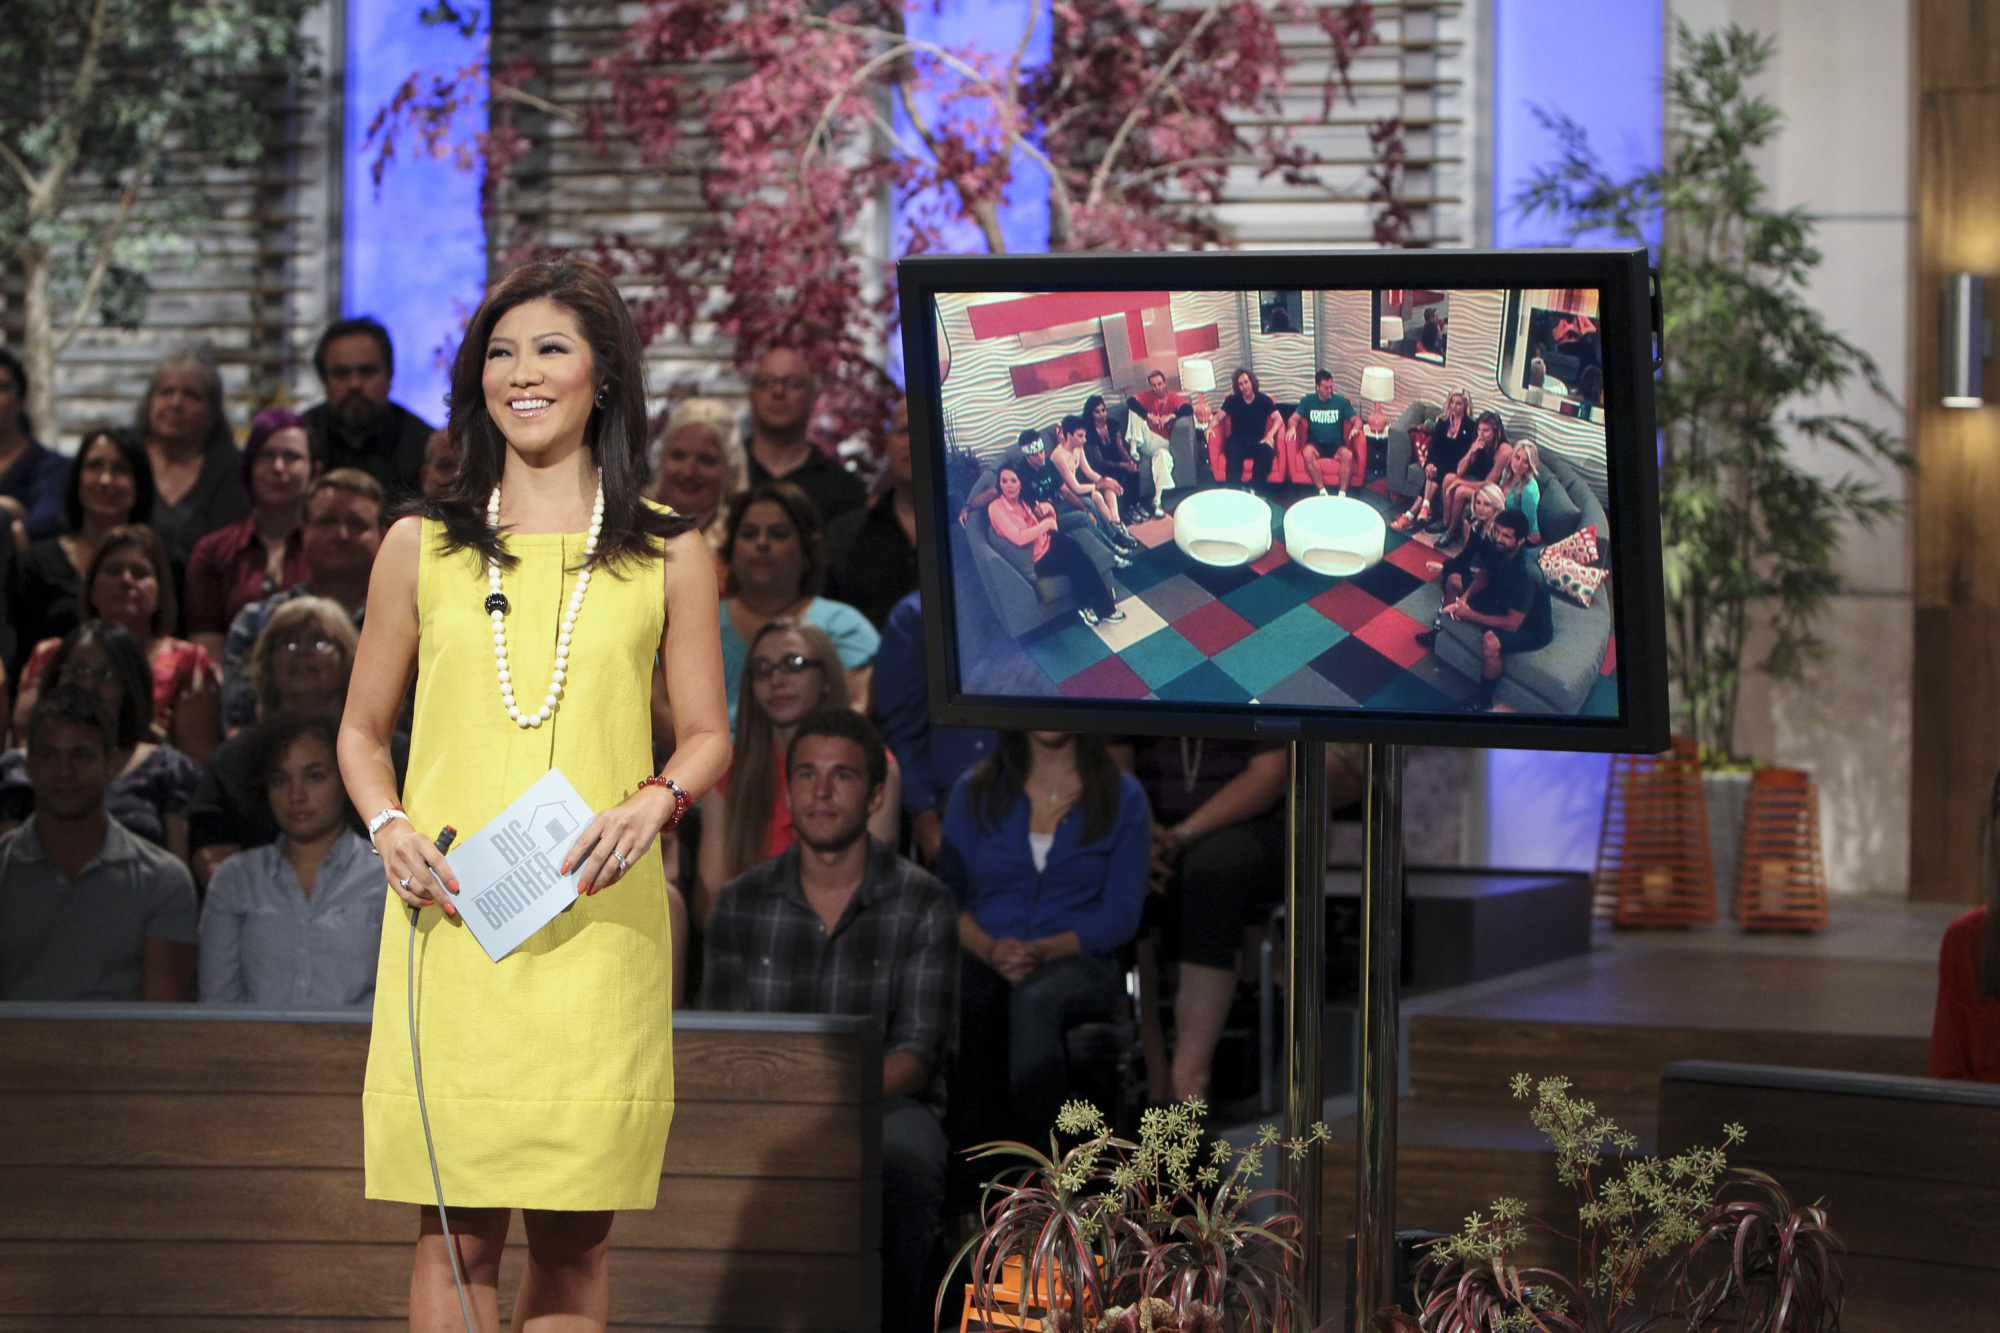 Host Julie Chen